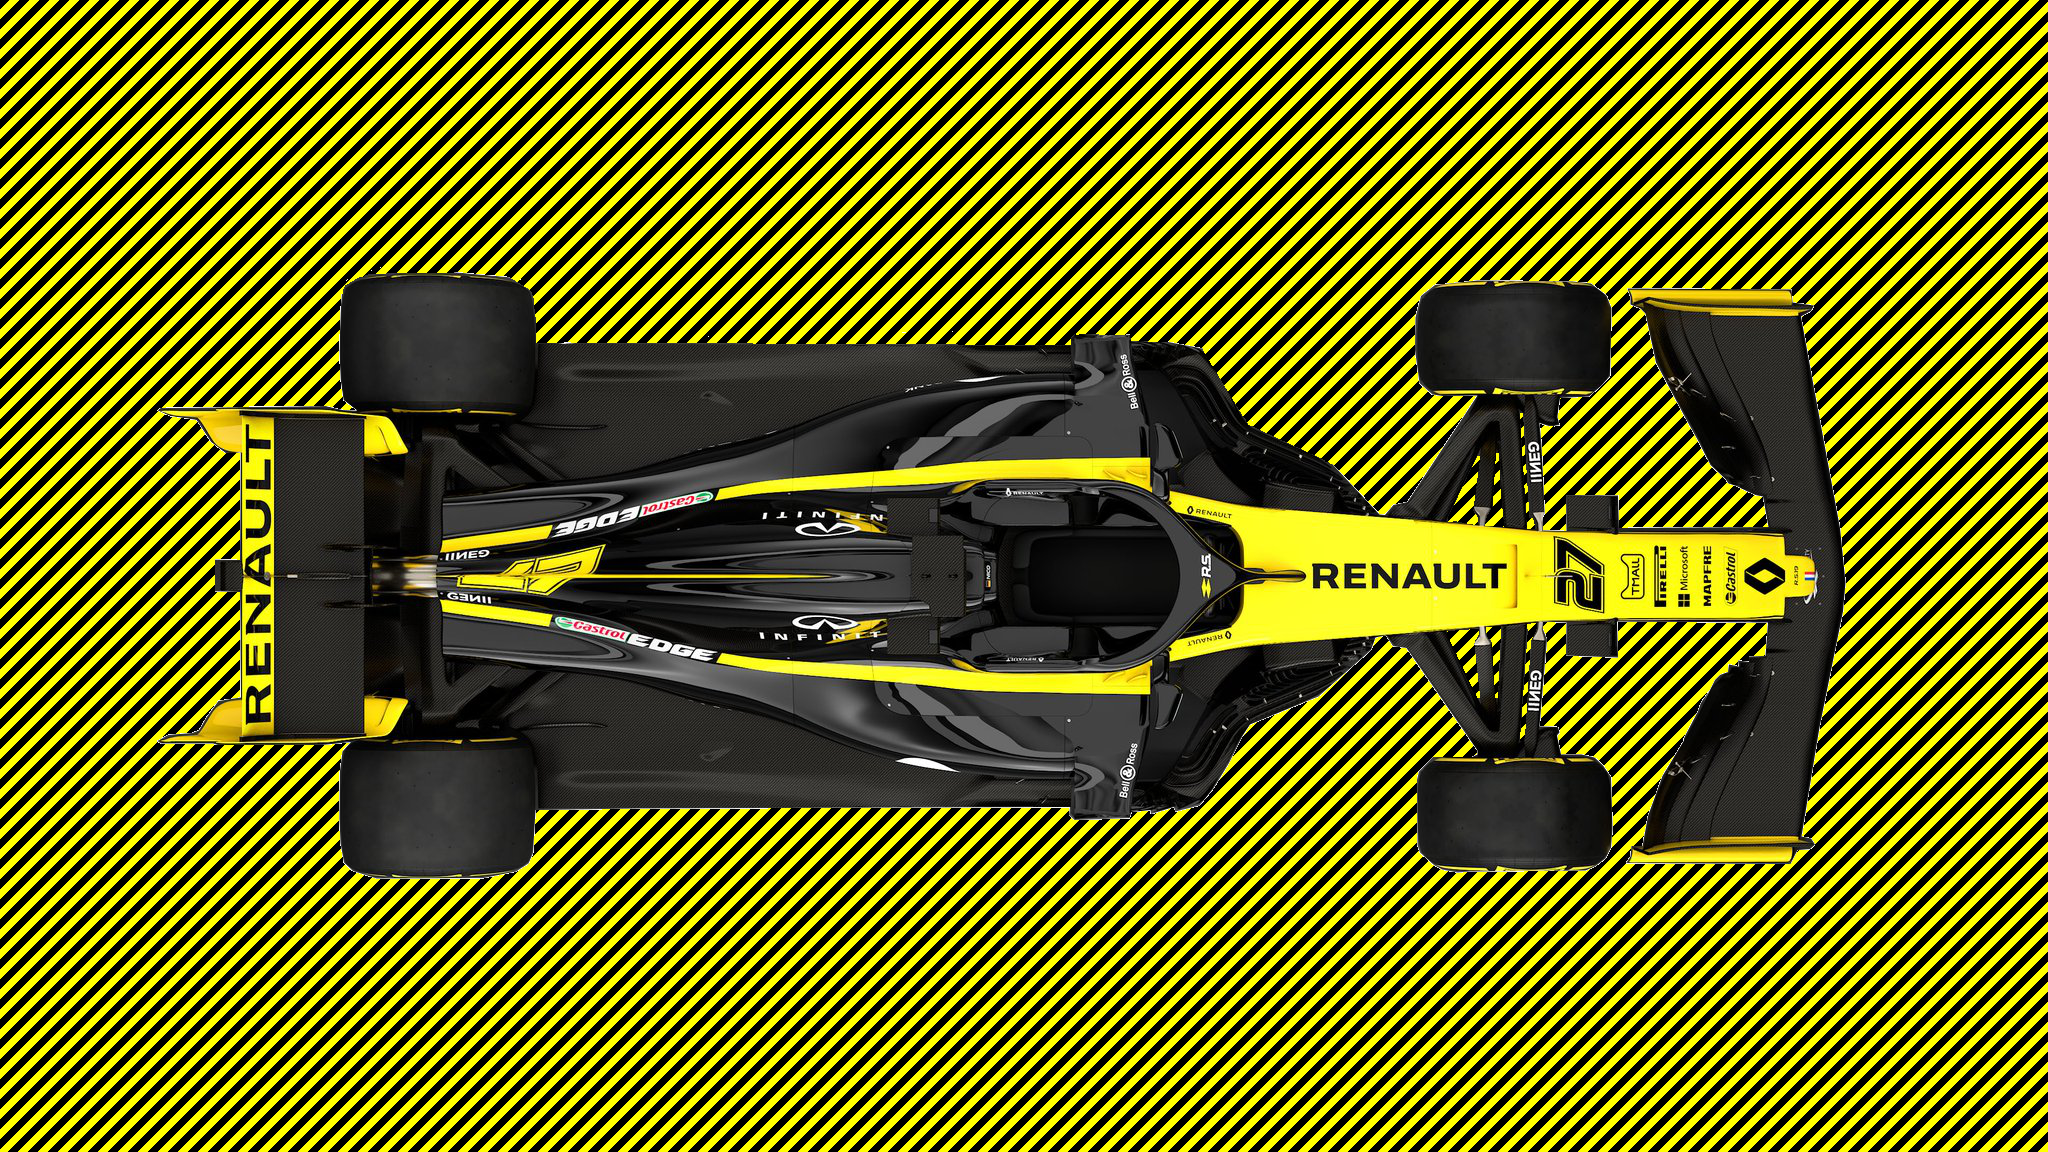 Quick edit of Renault RS 19 for a wallpaper please hire me as 2048x1152